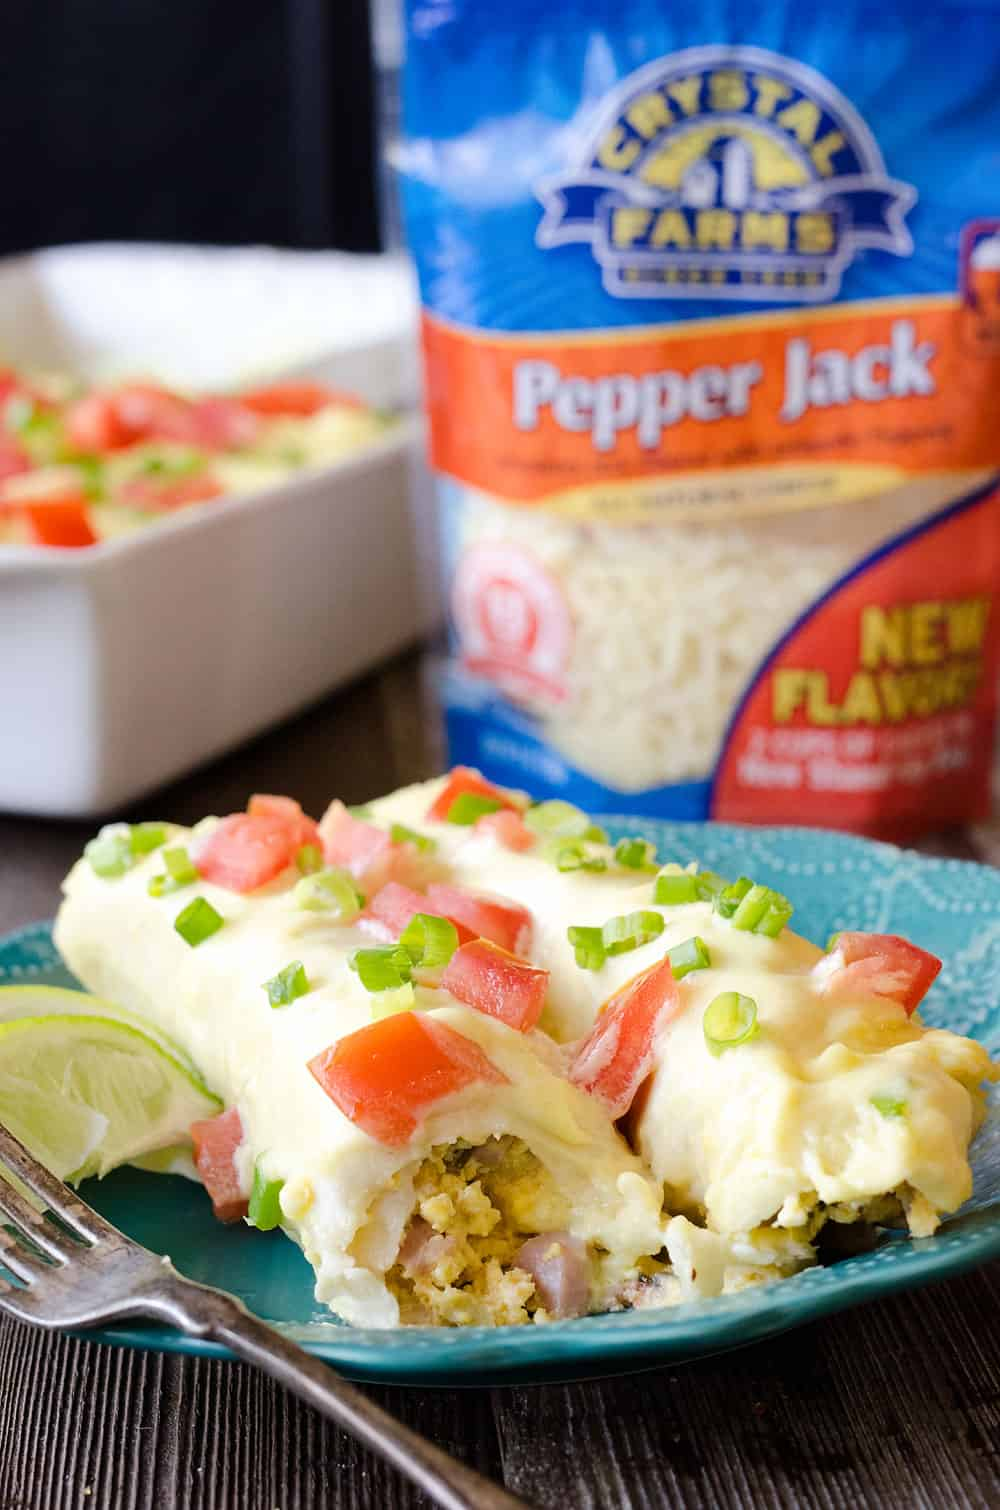 Cheesy Eggs Benedict Breakfast Enchiladas are a fun twist on brunch that will satisfy a crowd! Fluffy scrambled eggs, green chilis and leftover ham are rolled up in flour tortillas and covered with a cheesy hollandaise sauce, then topped with fresh tomatoes and green onions, for a zesty and decadent breakfast you will love!